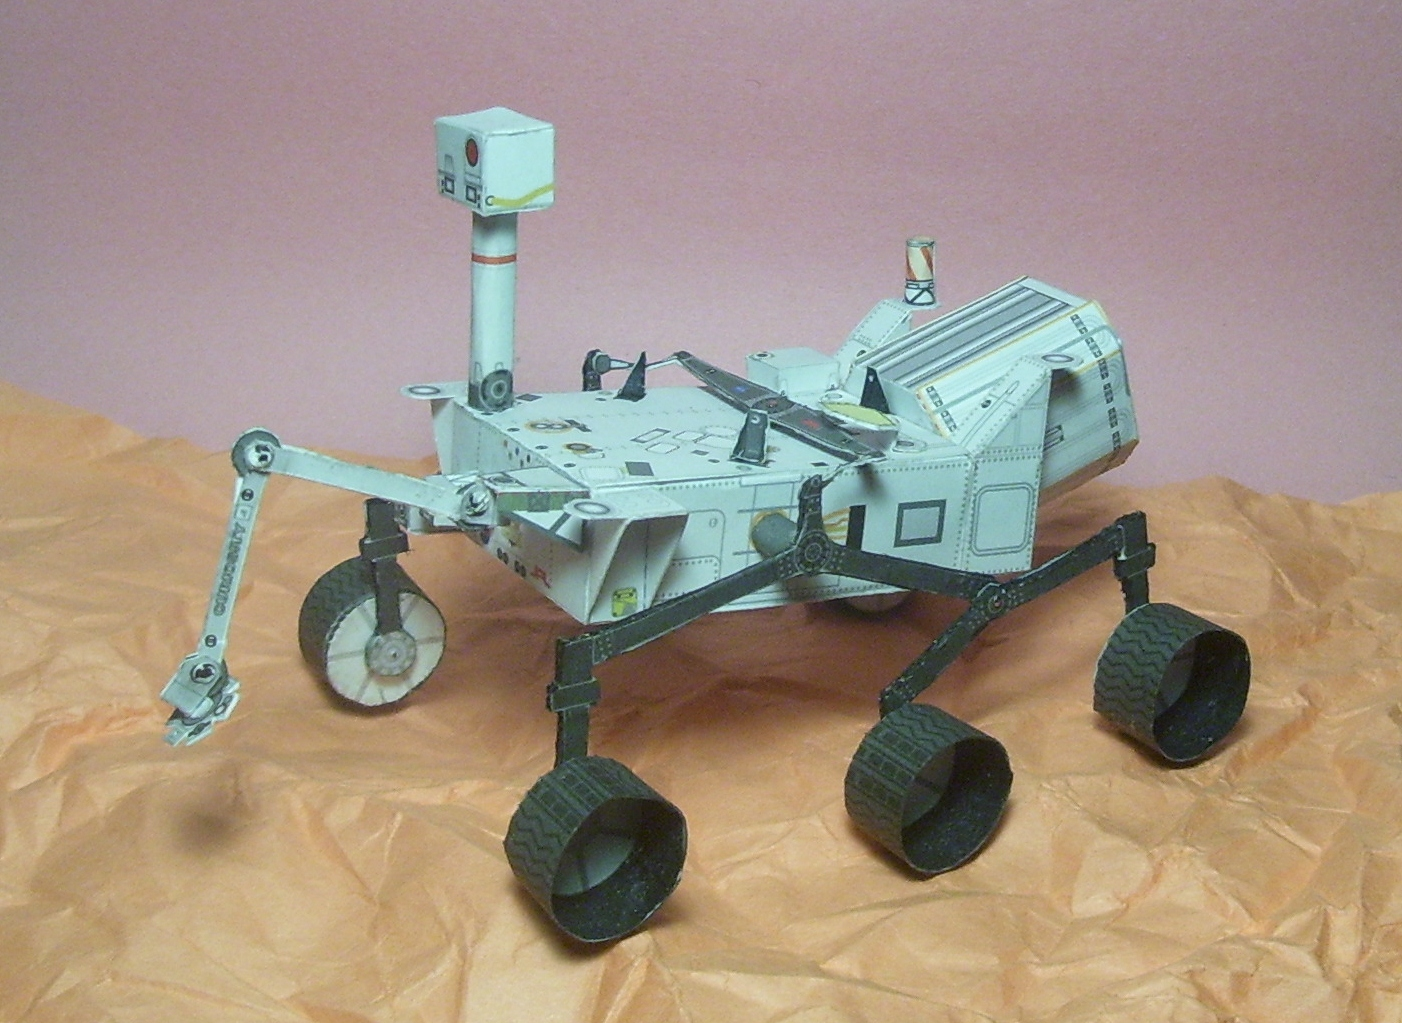 curiosity rover scale model - photo #3